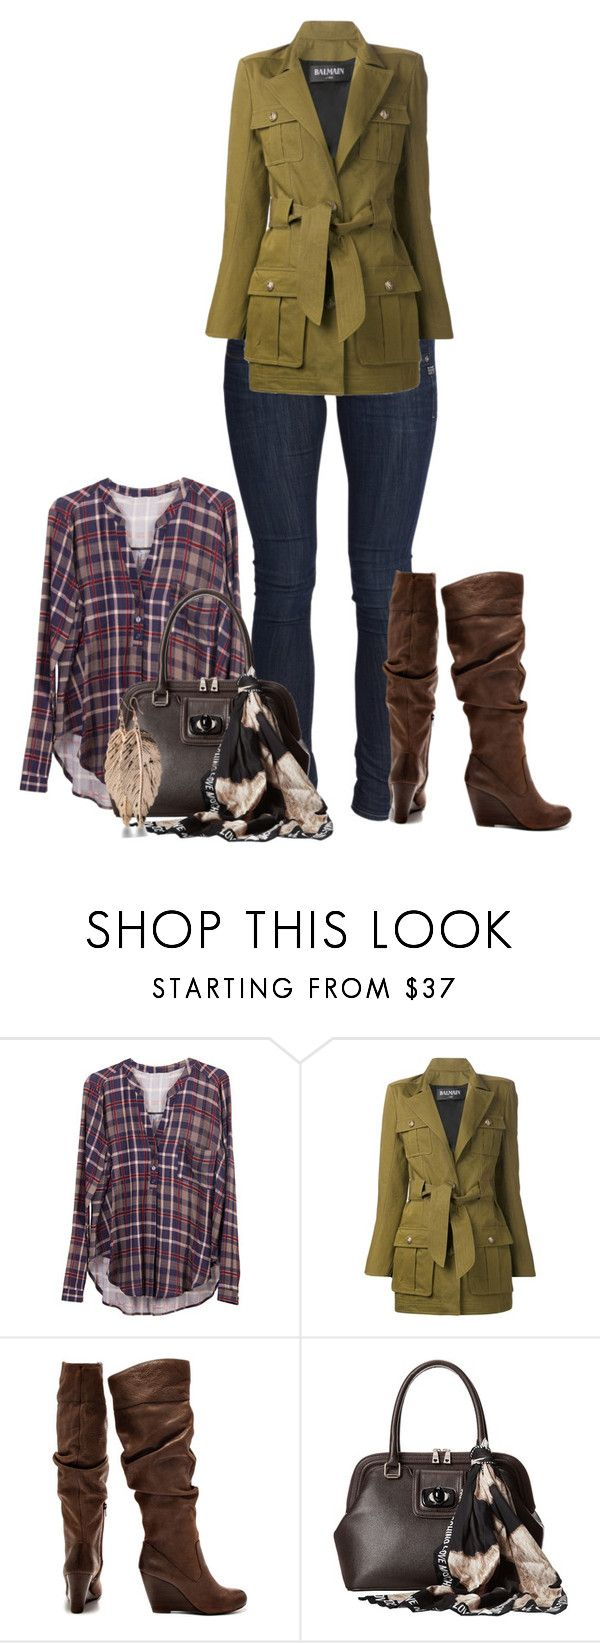 """""""Fall days"""" by brileila ❤ liked on Polyvore featuring Lush Clothing, Balmain, Jessica Simpson and Love Moschino"""